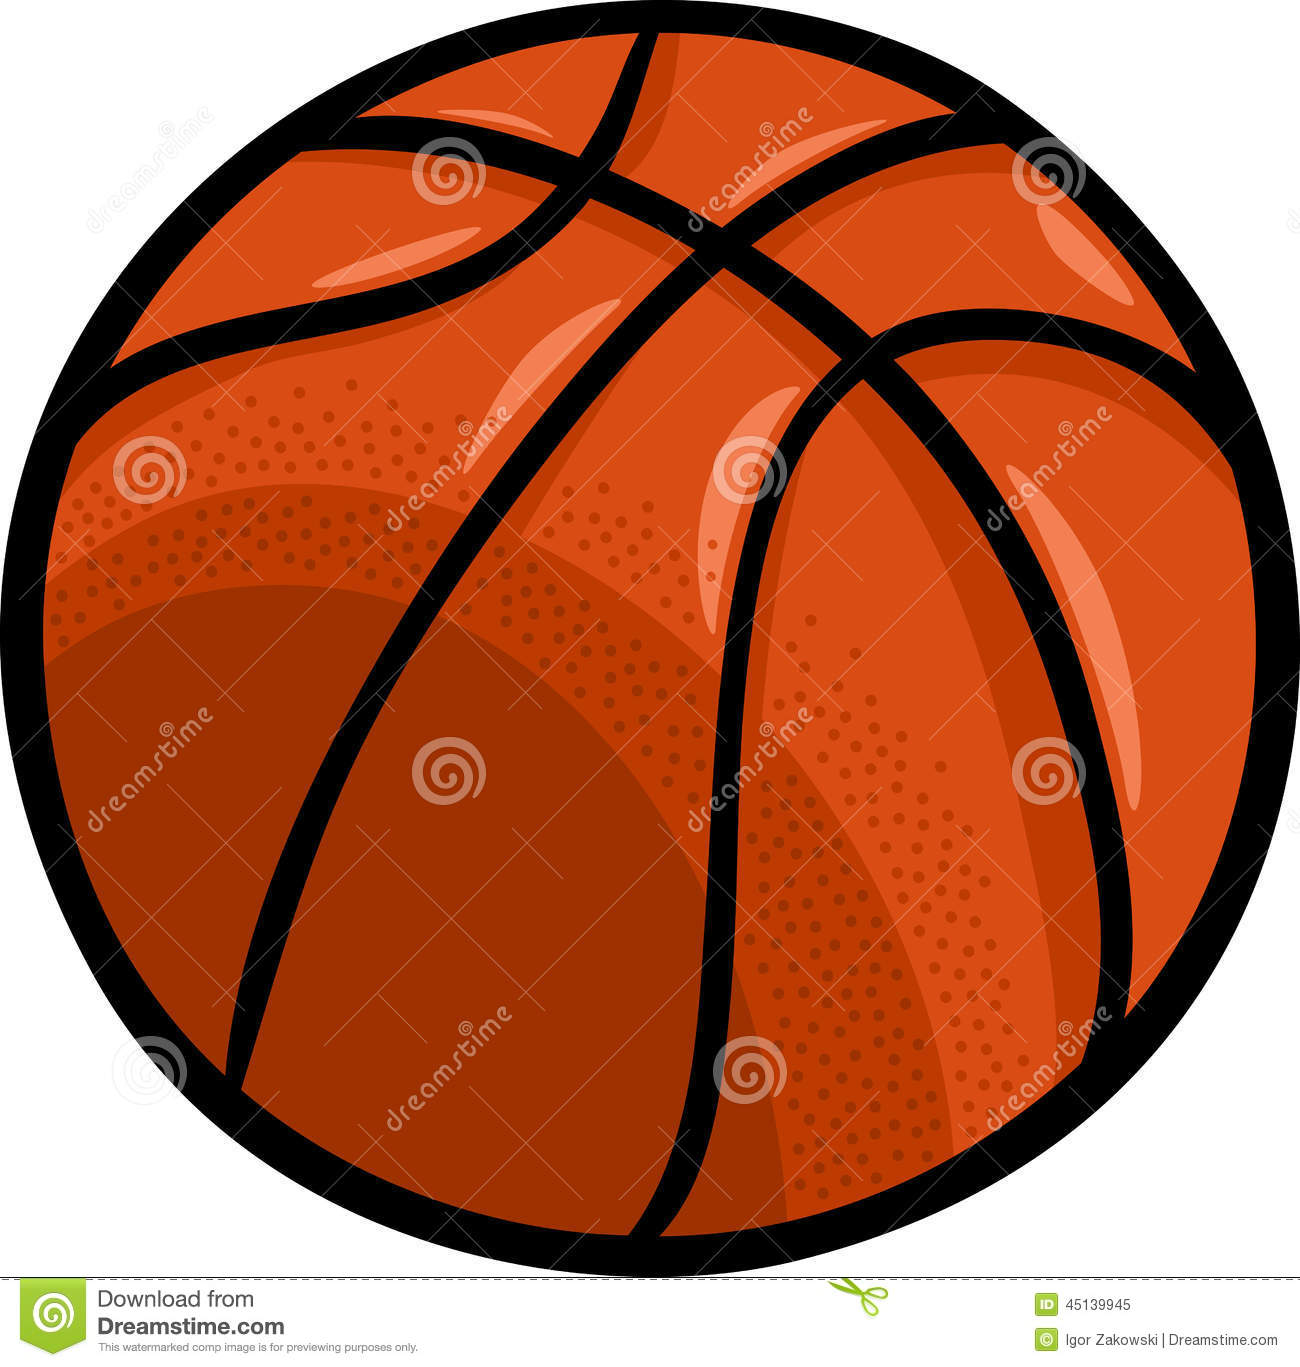 Clip Art Ball Clip Art basketball ball cartoon clip art stock vector image 45139945 art